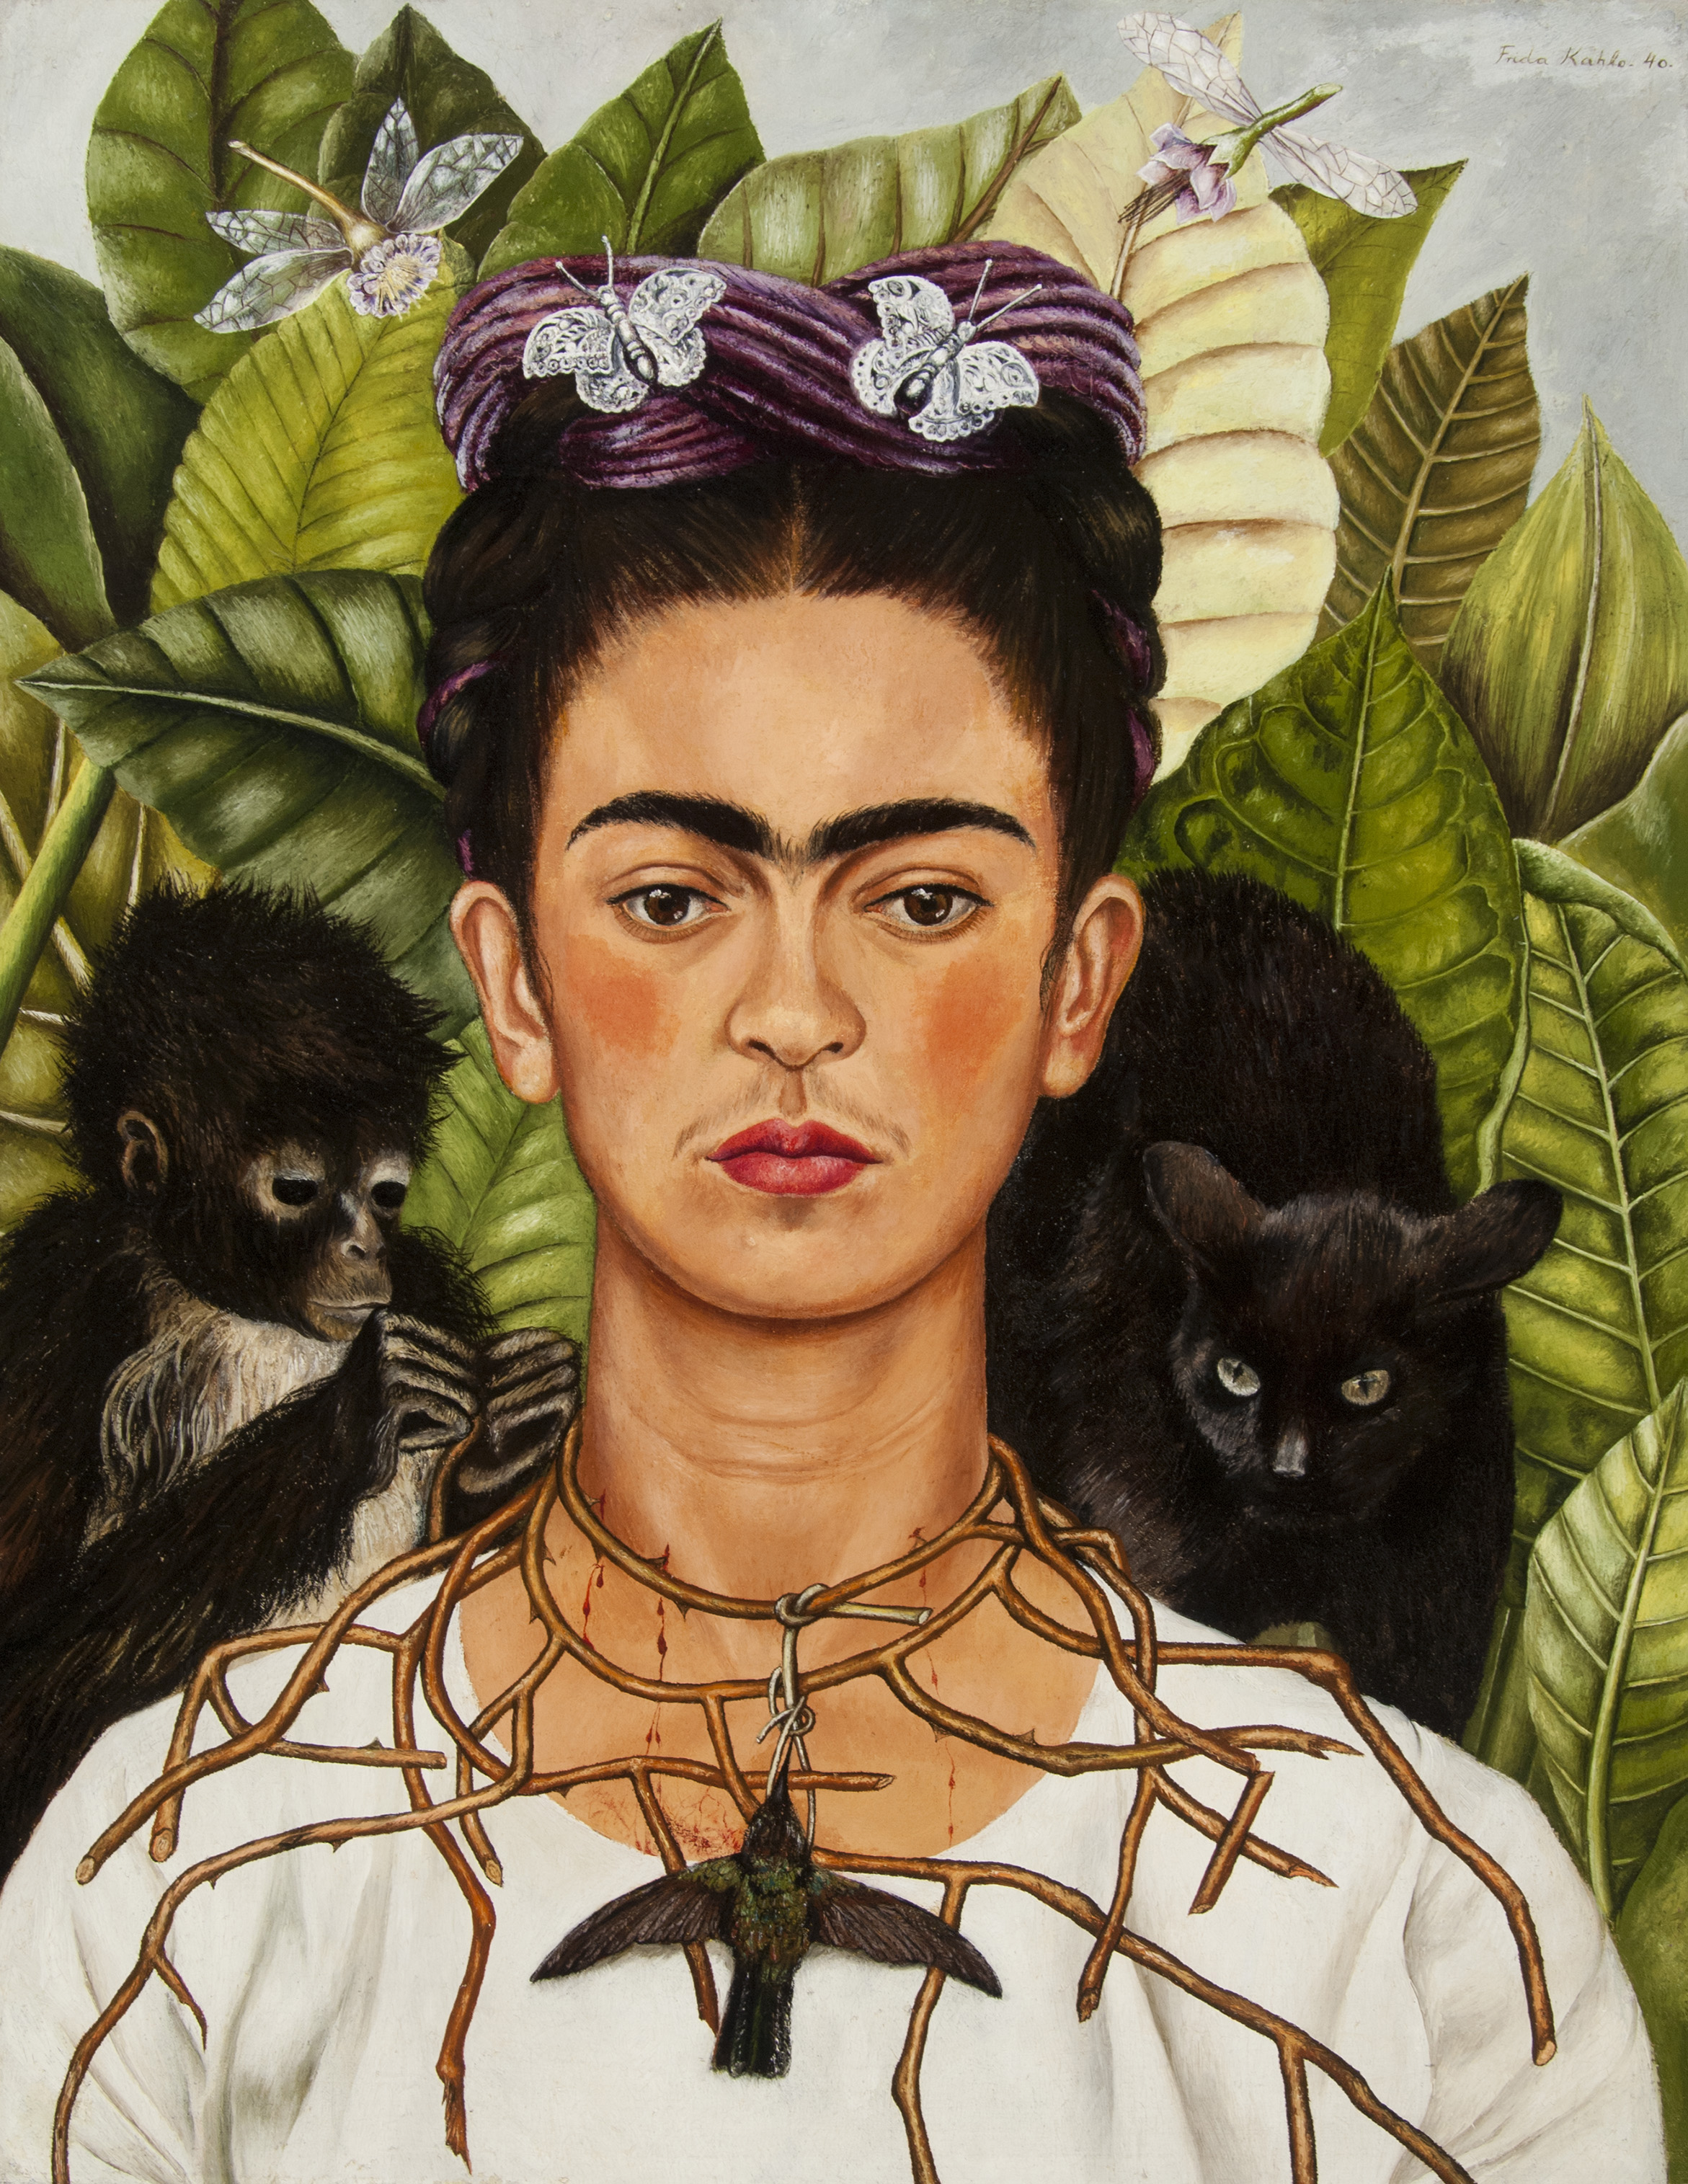 Self-Portrait with Hummingbird and Thorn. Frida Kahlo (Mexican, 1907–1954). 1940. Oil on masonite. *Nickolas Muray Collection of Modern Mexican Art, Harry Ransom Center, The University of Texas at Austin. *© 2018 Banco de México Diego Rivera Frida Kahlo Museums Trust, Mexico, D.F./Artists Rights Society (ARS), New York. *Courtesy, Museum of Fine Arts, Boston.